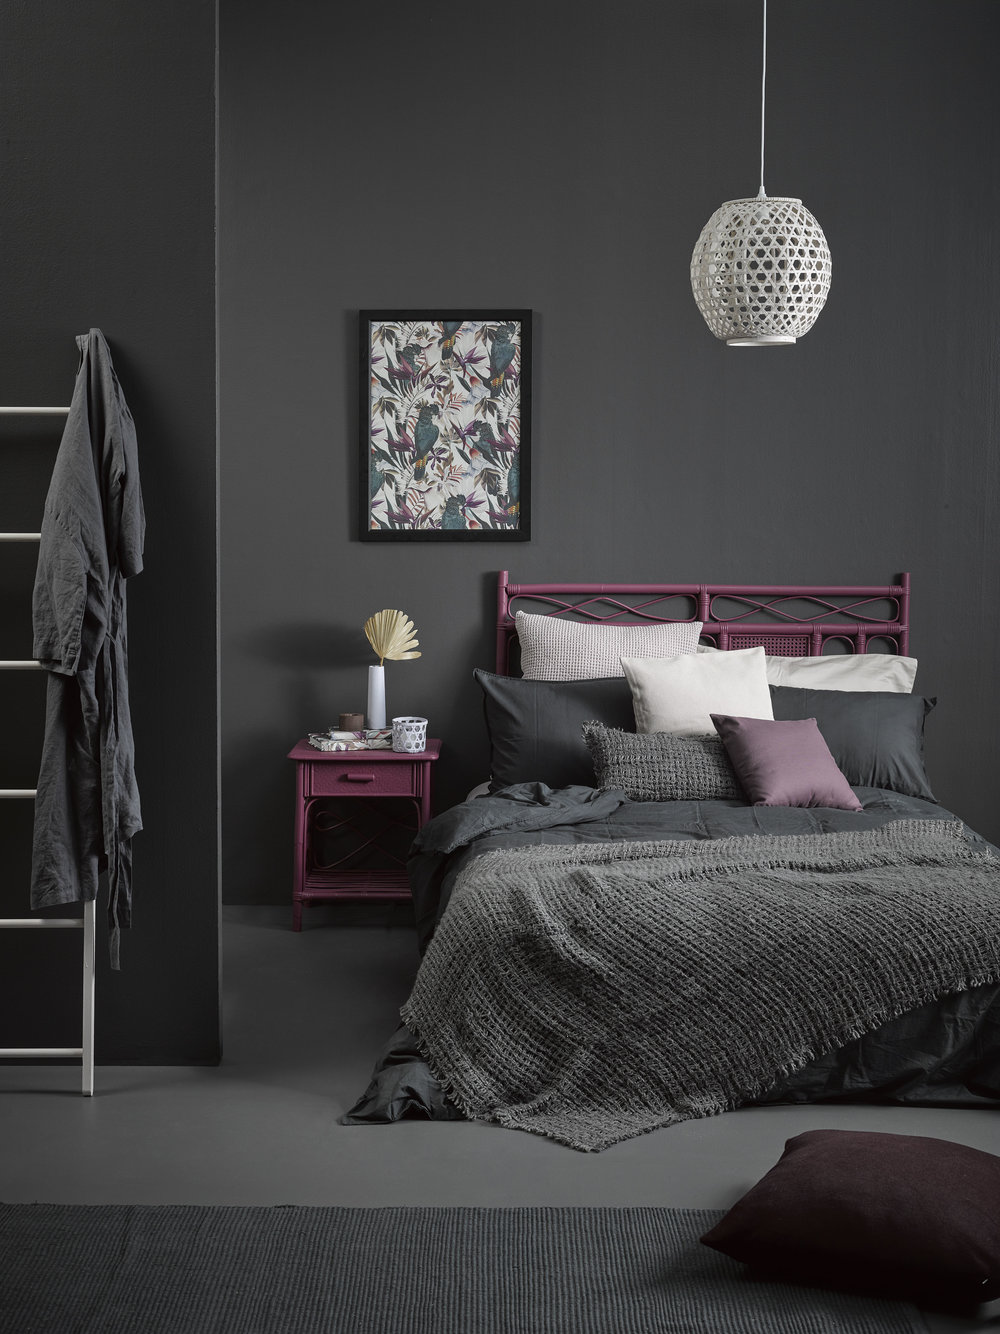 Wall in Resene Quarter Bokara Grey. Floor in Resene Eighth Bokara Grey. Cane headboard and side table in Resene Virtuoso. Pendant light and ladder in Resene Ethereal. Slender vase, tea light and hex wall planter in Resene Dreamtime. Cork tealight holder in Resene Rebel